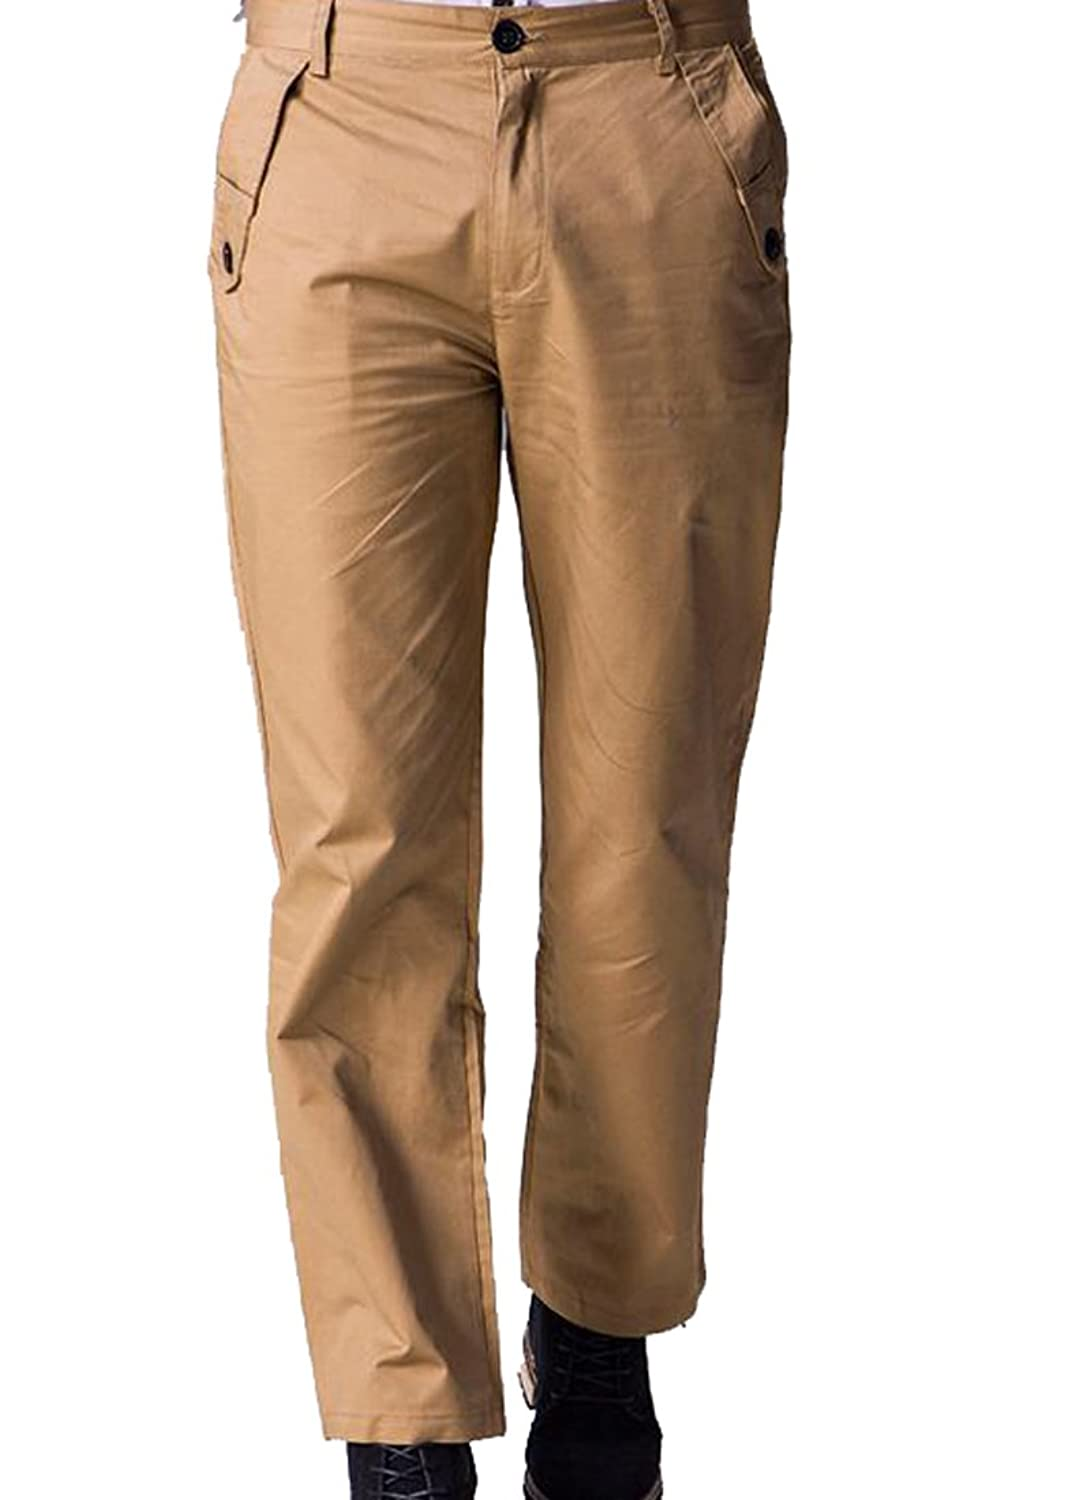 Abetteric Mens Premium Soild Formal Trousers Flat-Front Casual Pants